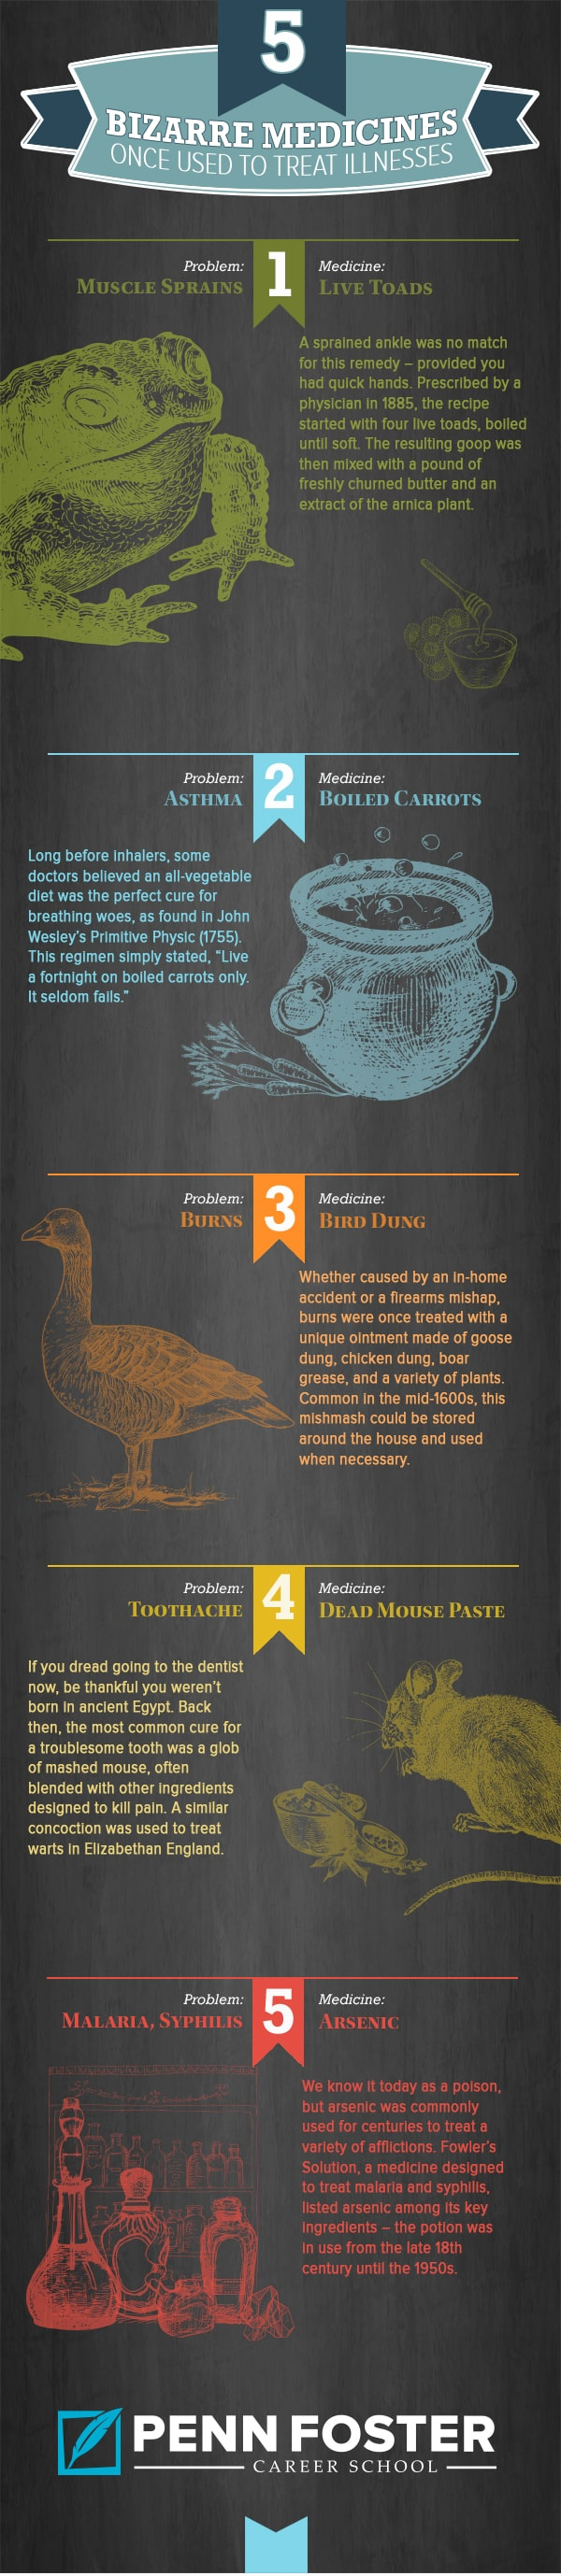 pharmacy tech bizarre medicines infographic